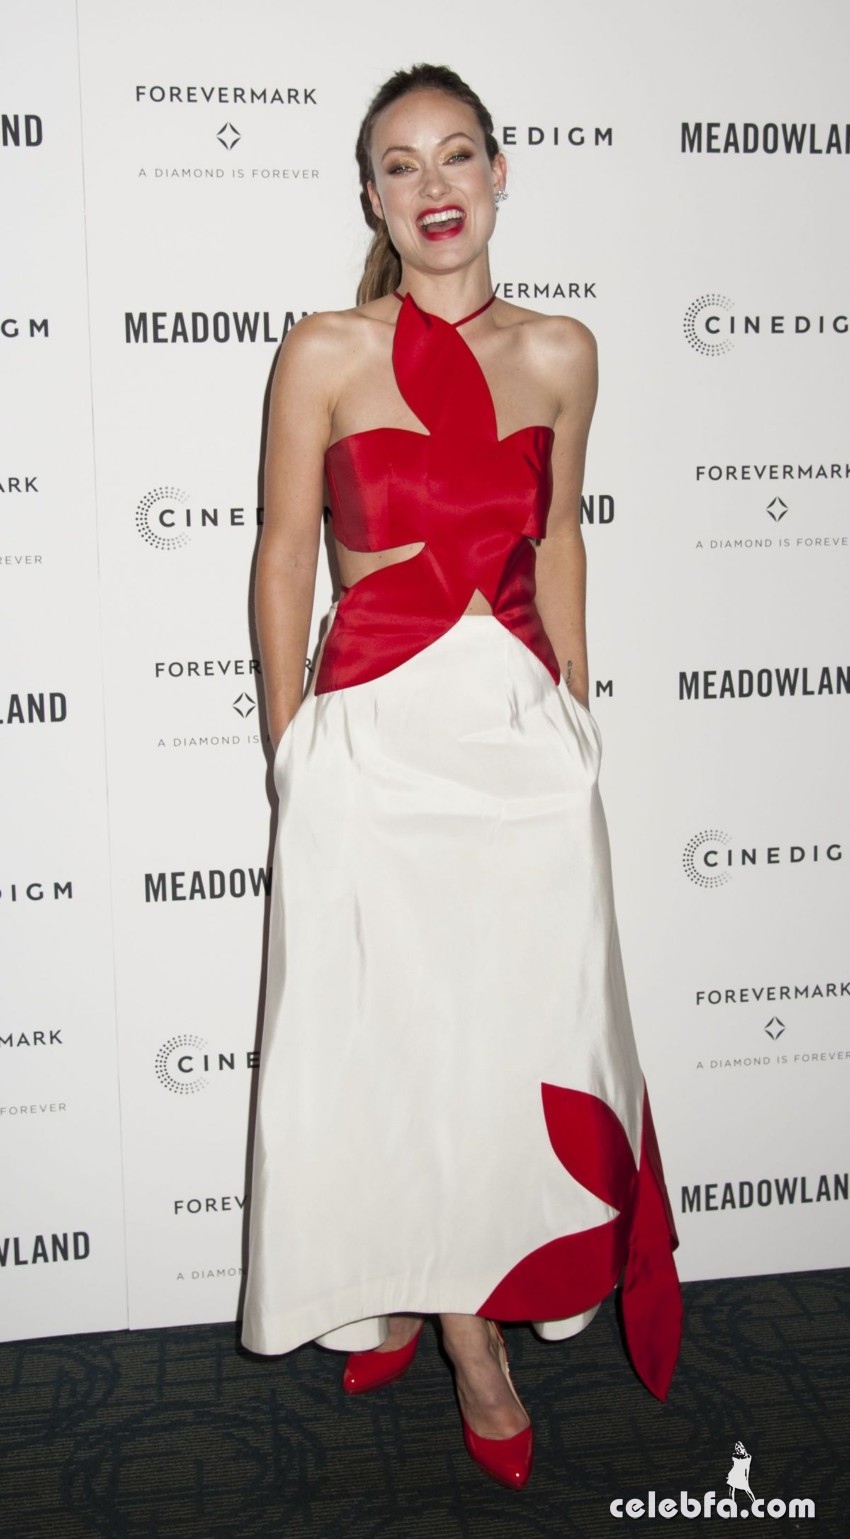 olivia-wilde-at-meadowland-screening-in-new-york (5)